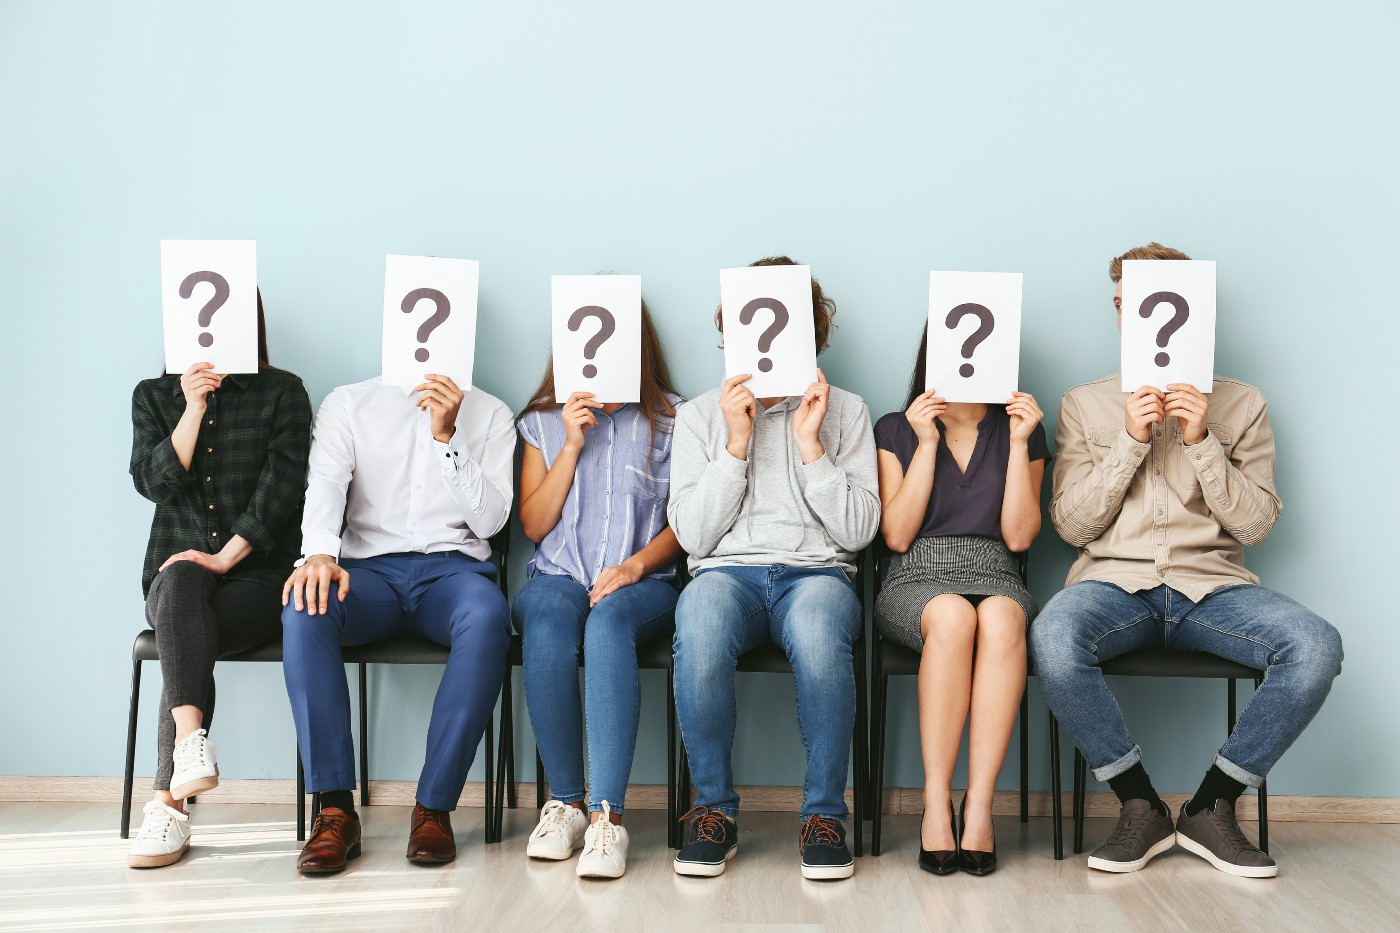 Employees sitting holding papers with question marks over their faces